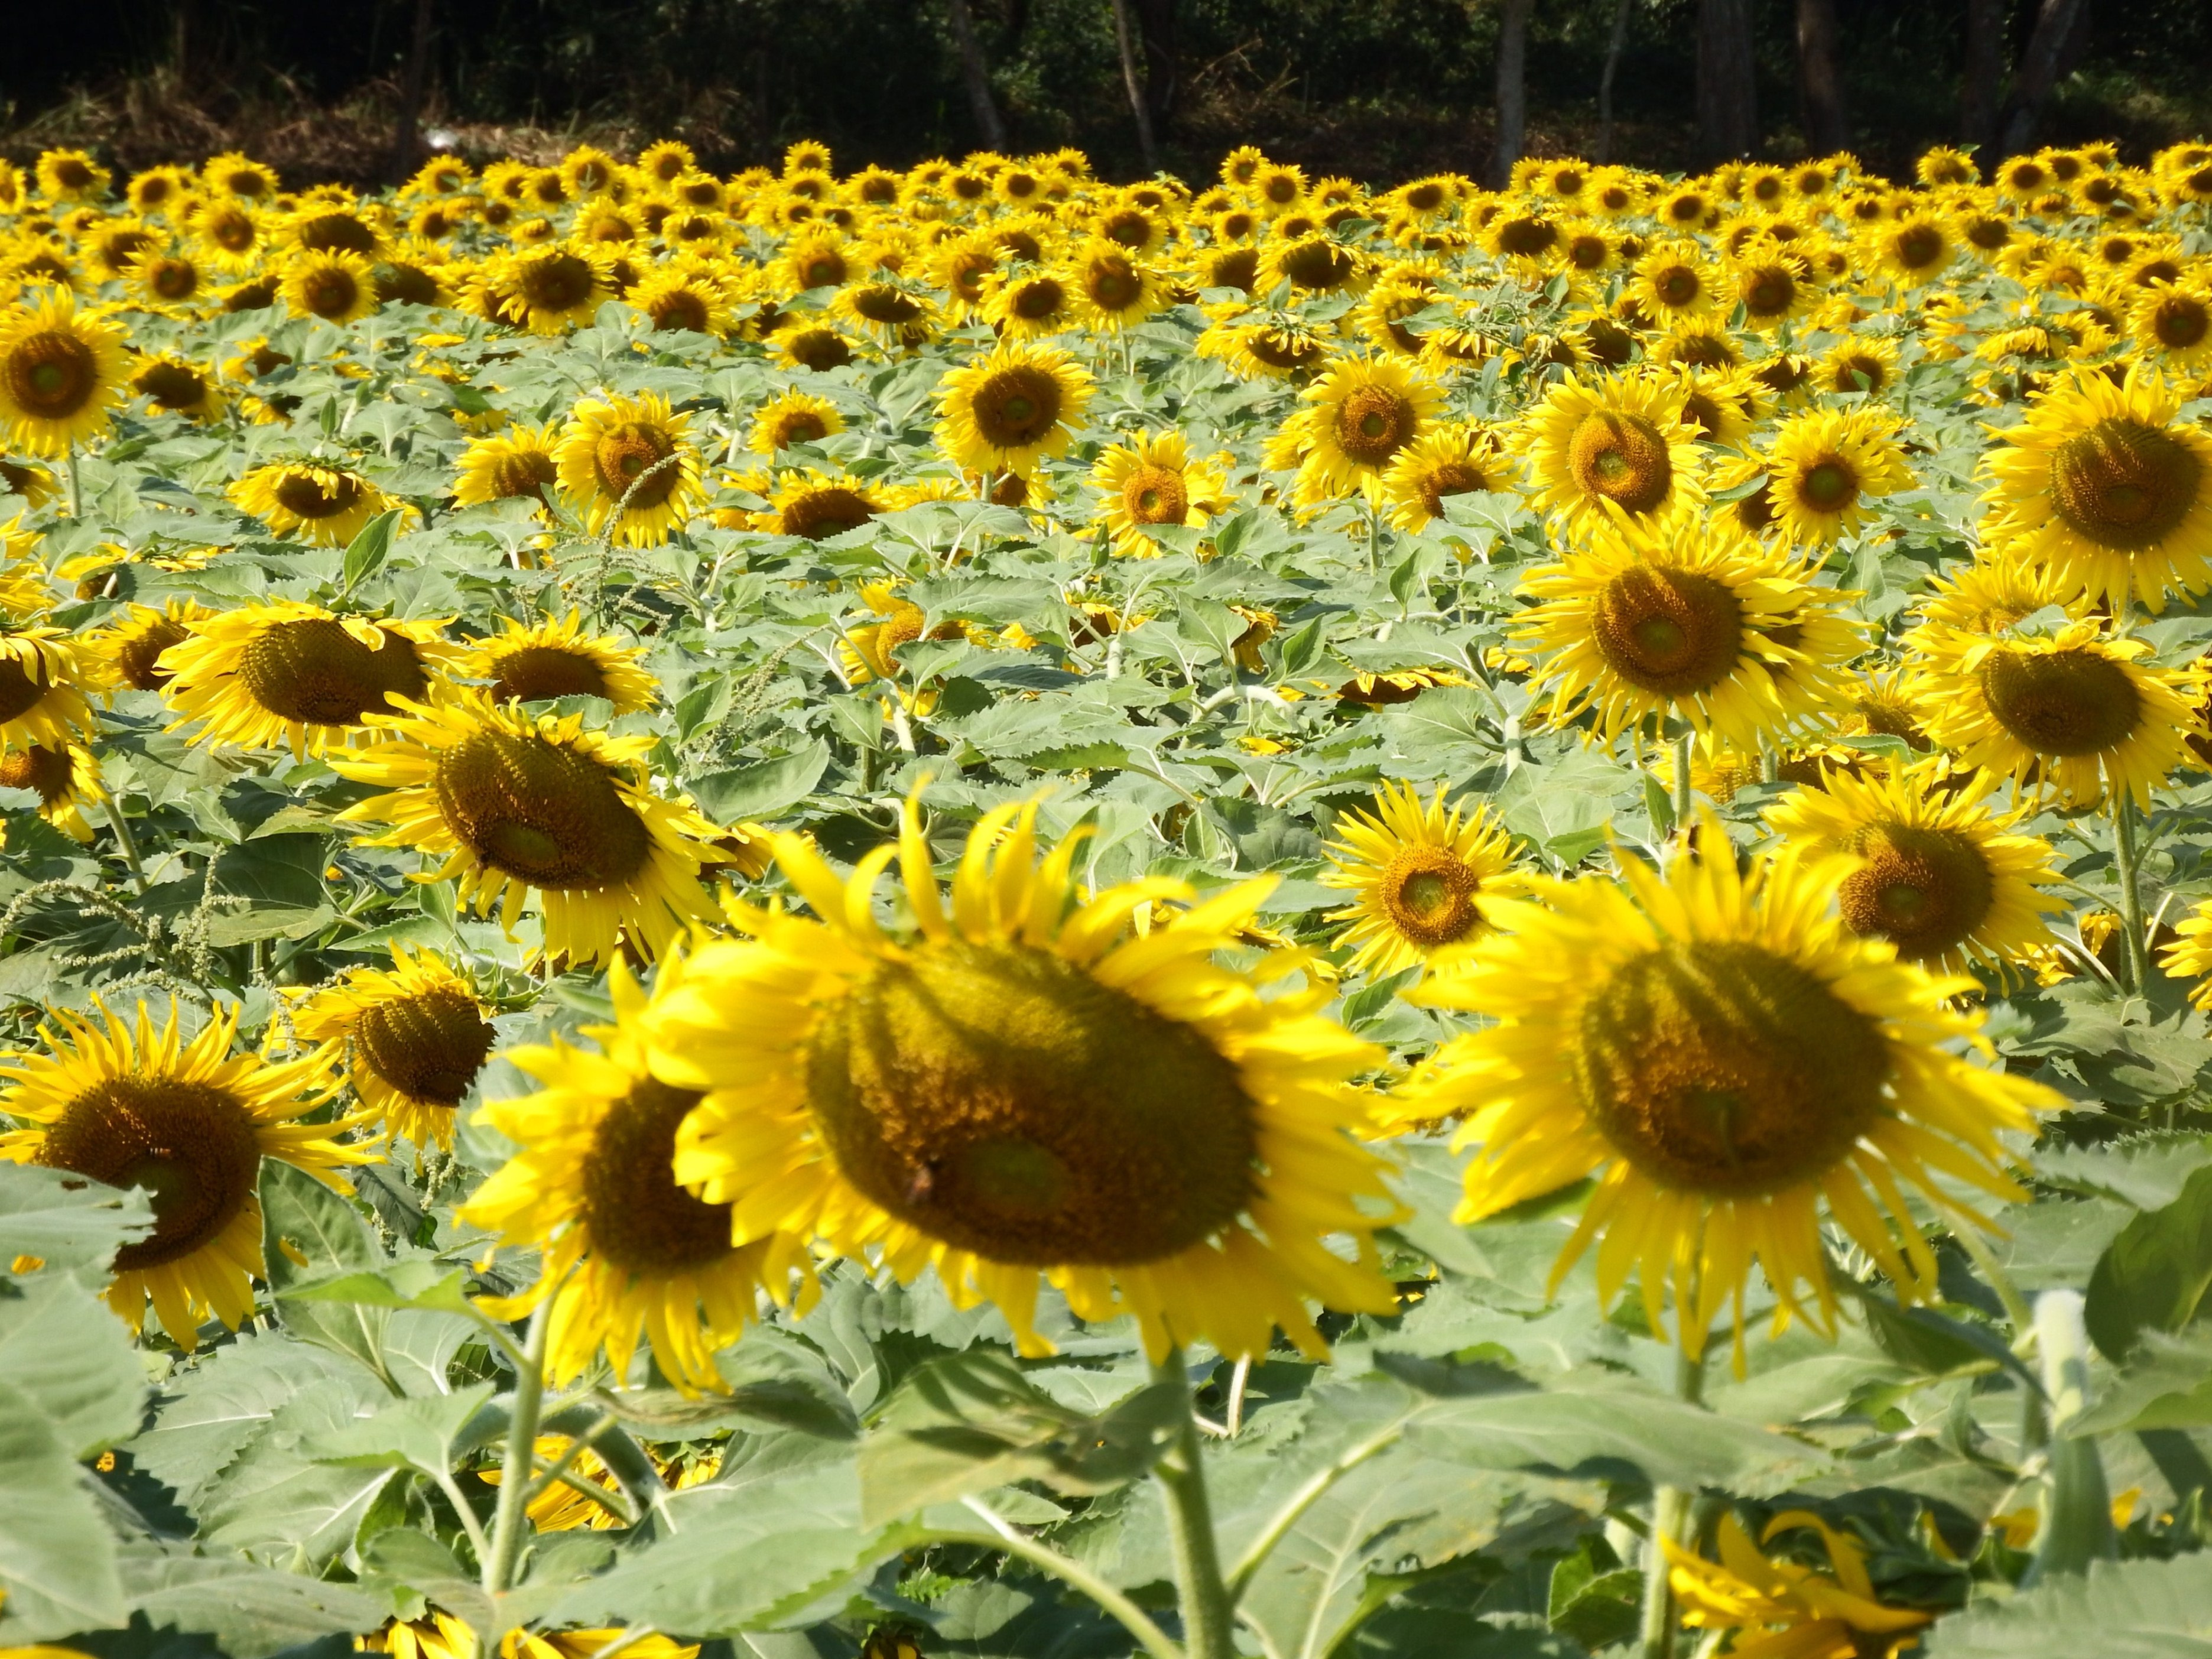 Sunflower Field, Relax, Rural, Plant, Photo, HQ Photo